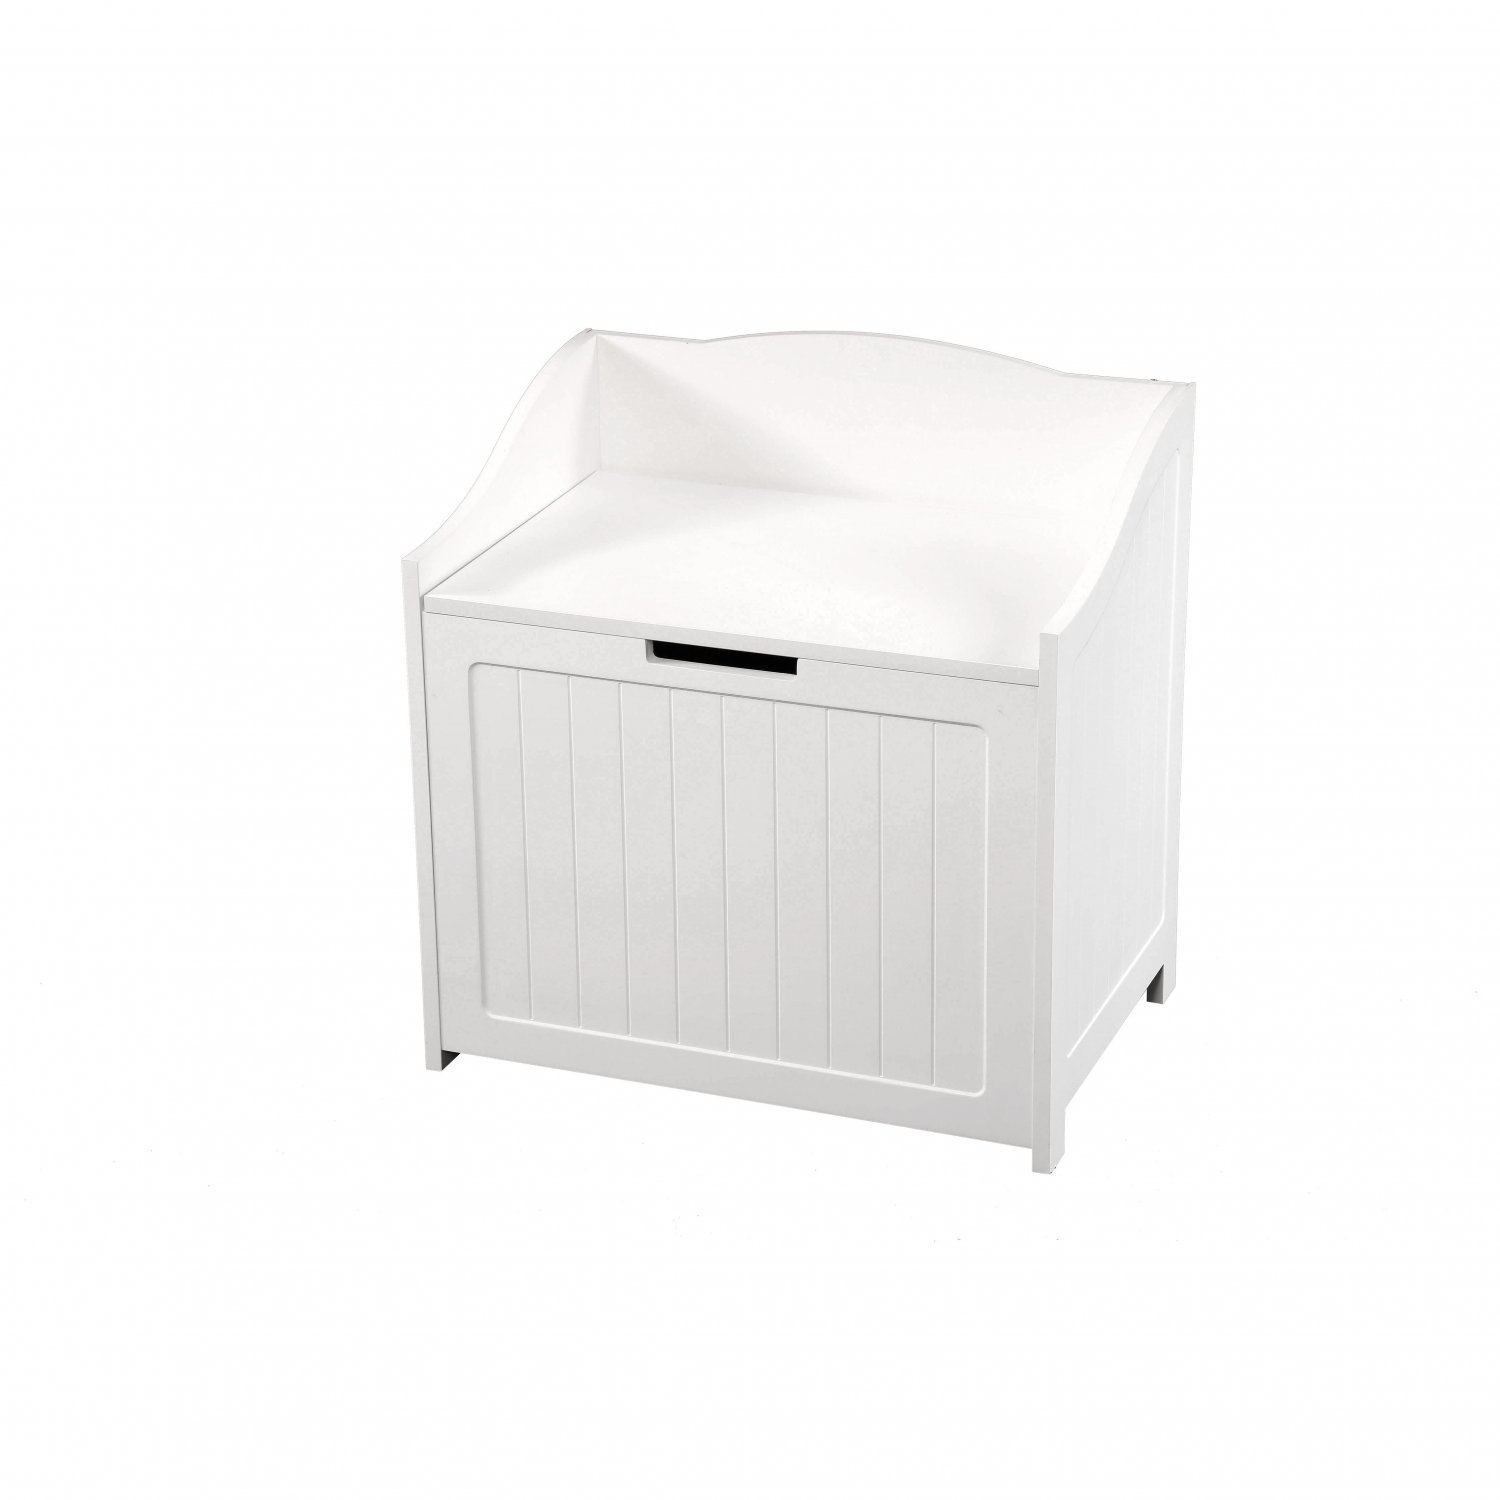 White Storage Toy Box Laundry Basket Organiser Chest with Easy O